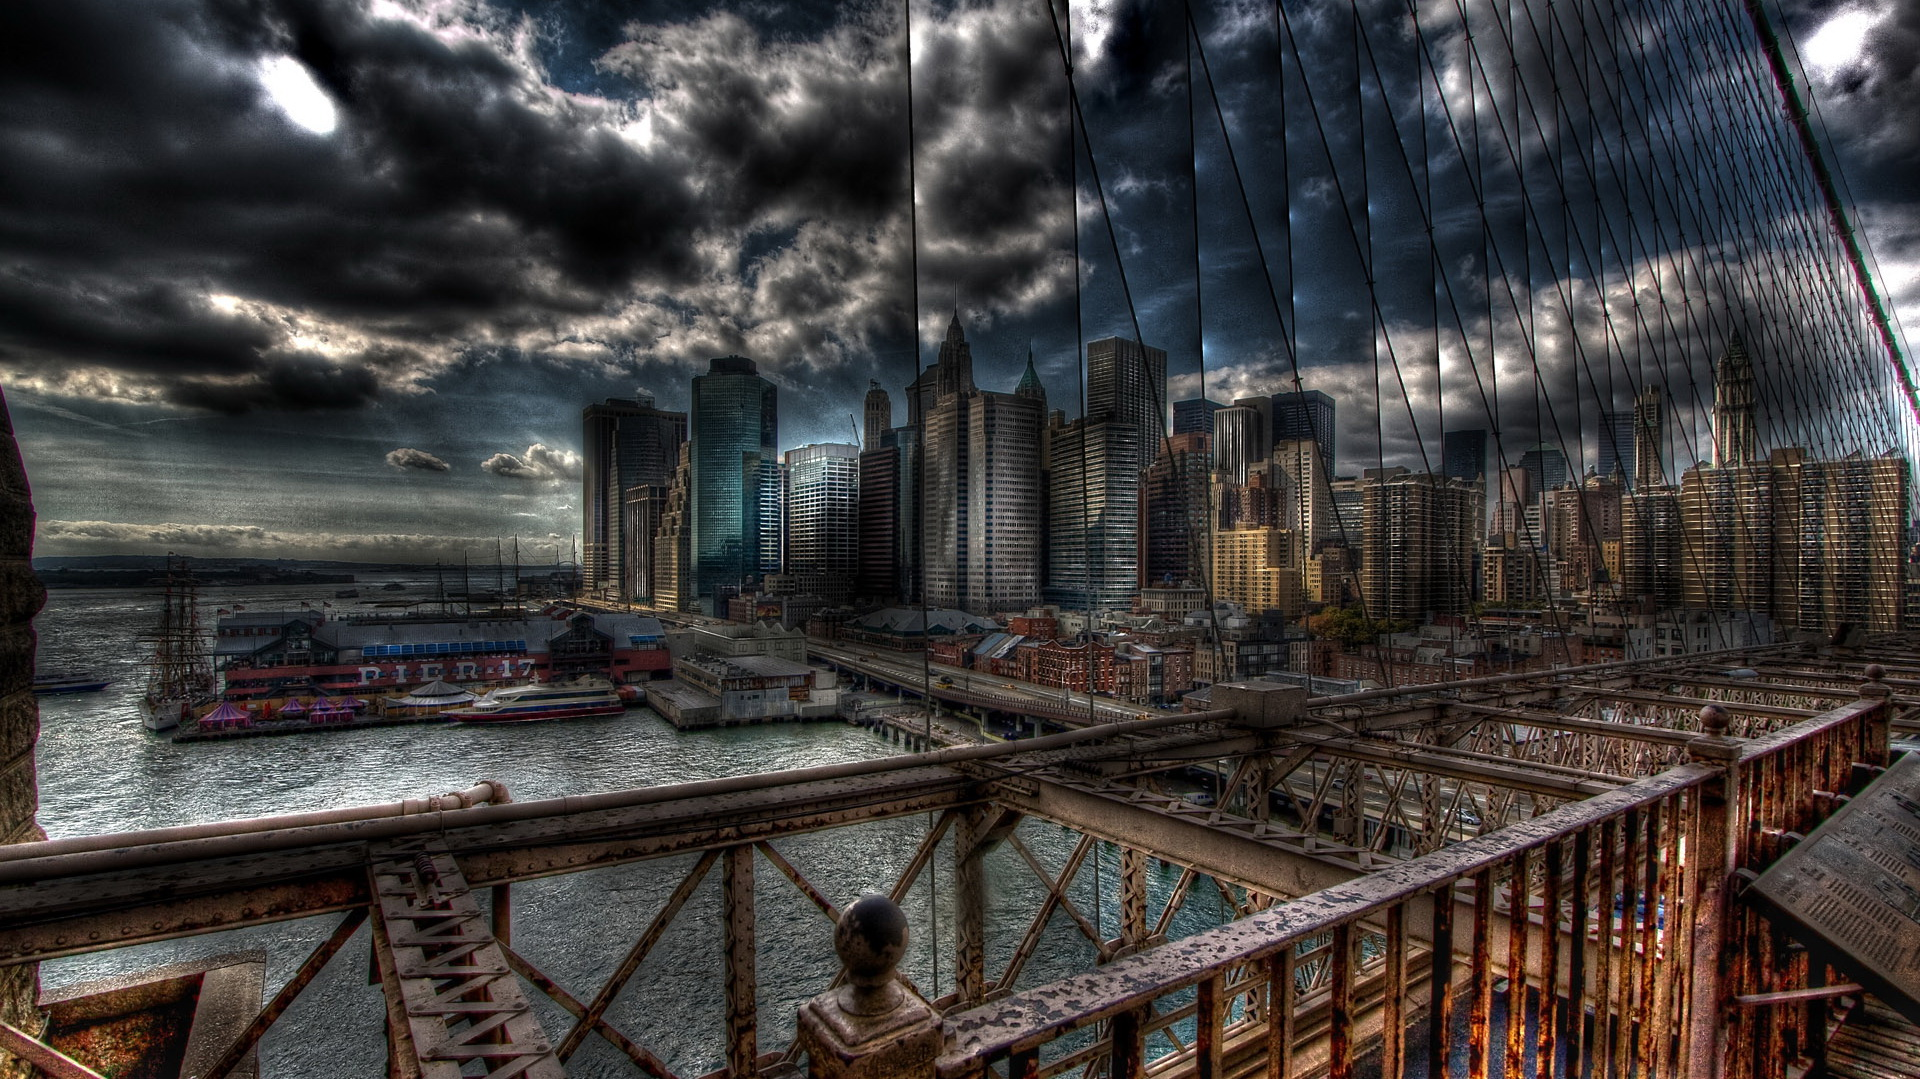 click to free download the wallpaper--Depressing City Scenes - Tall Buildings Added with Gloomy Atmosphere, the Dark and Cloudy Sky, a Large Bridge 1920X1080 free wallpaper download